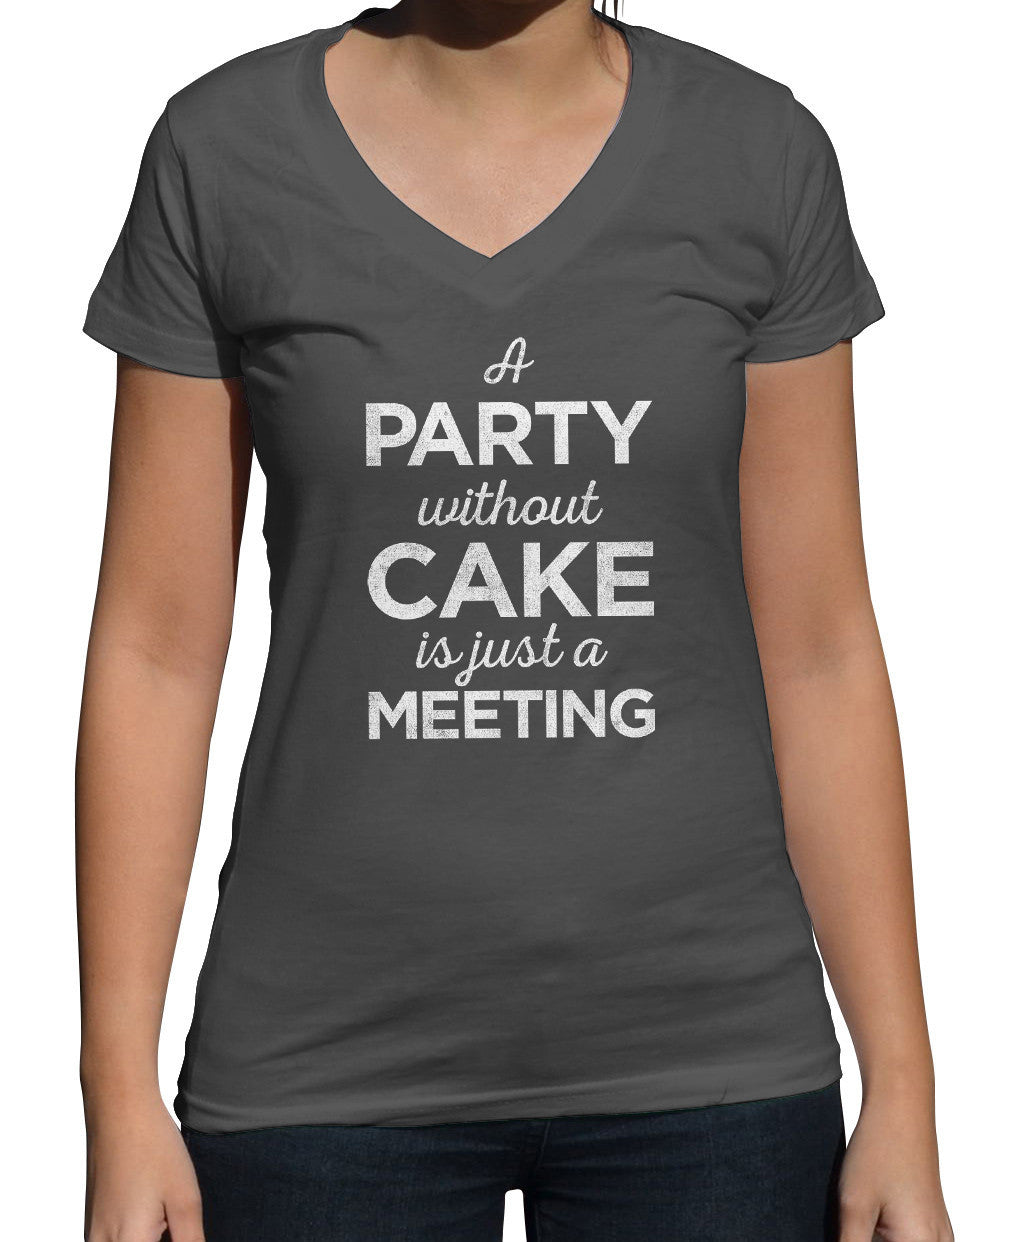 Women's A Party Without Cake is Just a Meeting Vneck T-Shirt